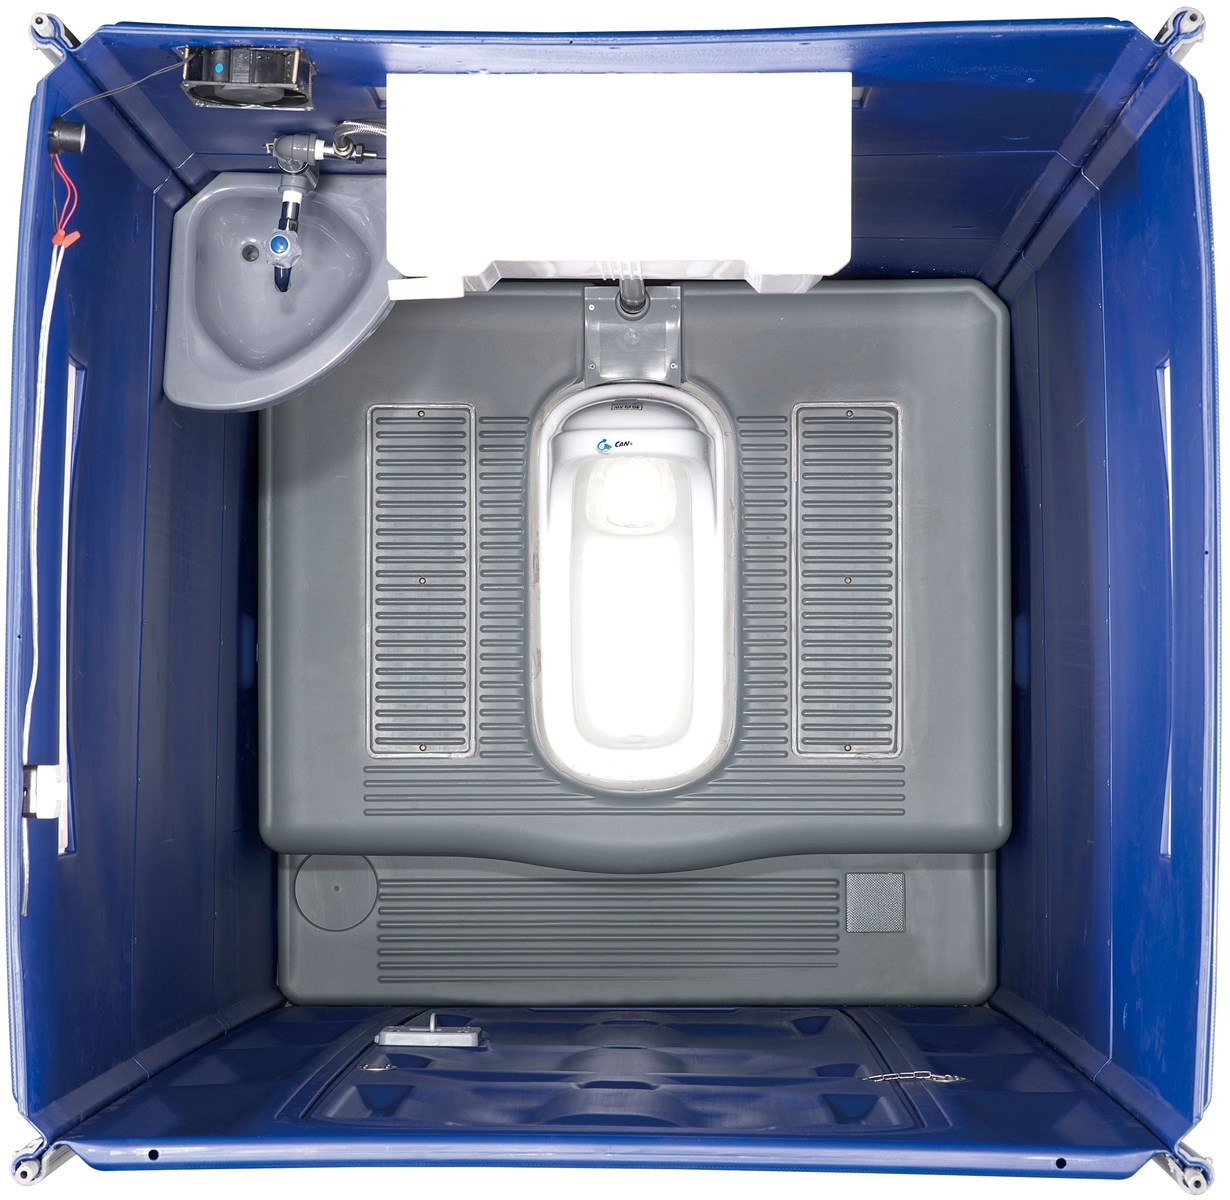 Cheap Automatic Door Close Prota Potty For Events Drain Off Portable Toilets with front baffle Ceramic Squat DOS859